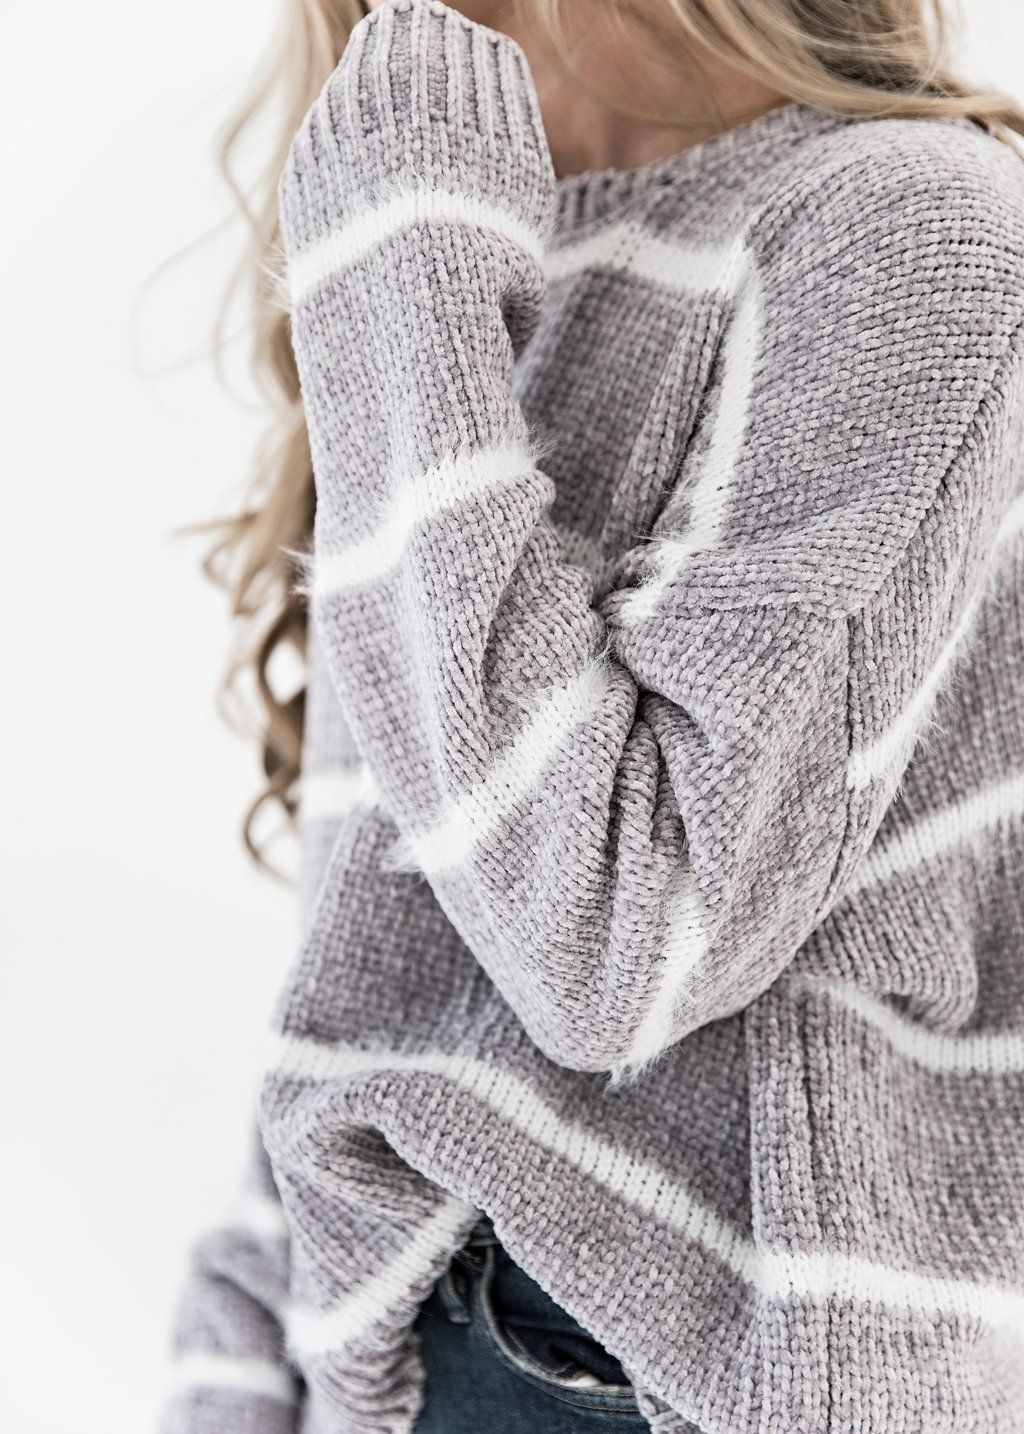 Light Grey Striped Crushed Sweater, JessaKae, New Arrival, Light Grey, Striped, ... 7